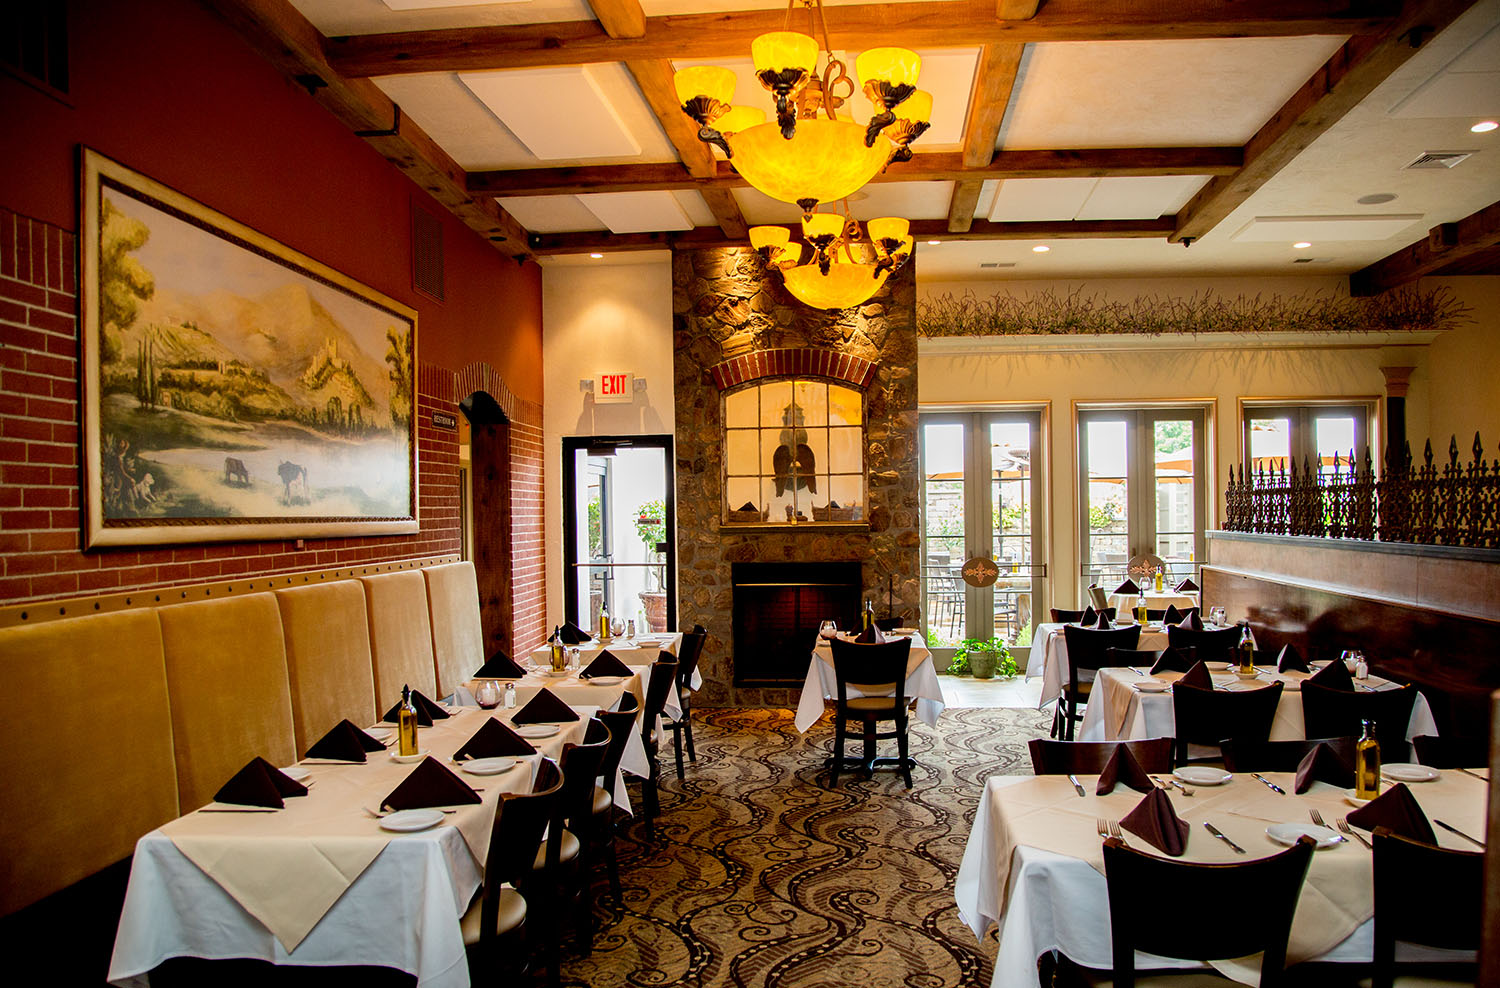 Our fireplaced dining room opens out to our private Tuscan patio.